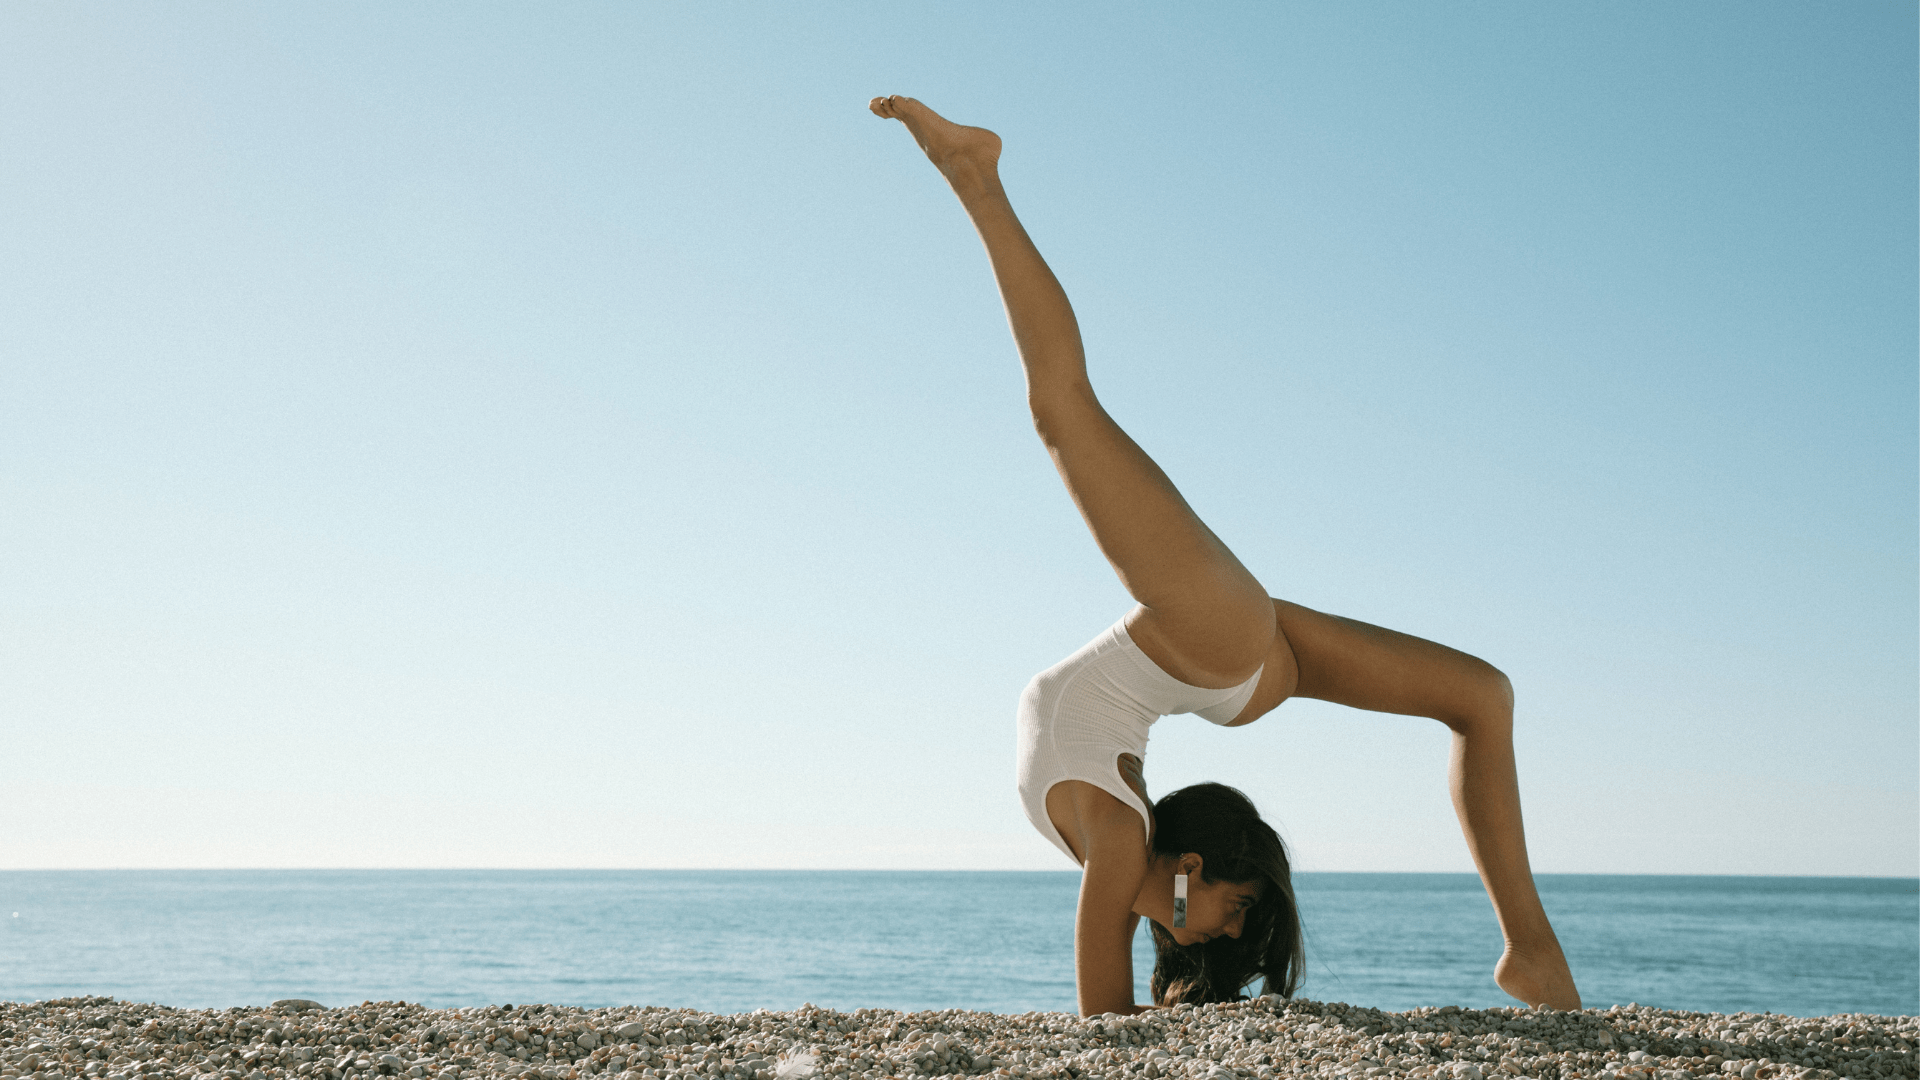 body contorsion yoga pose in front of the ocean with plaque long and lightweight earring